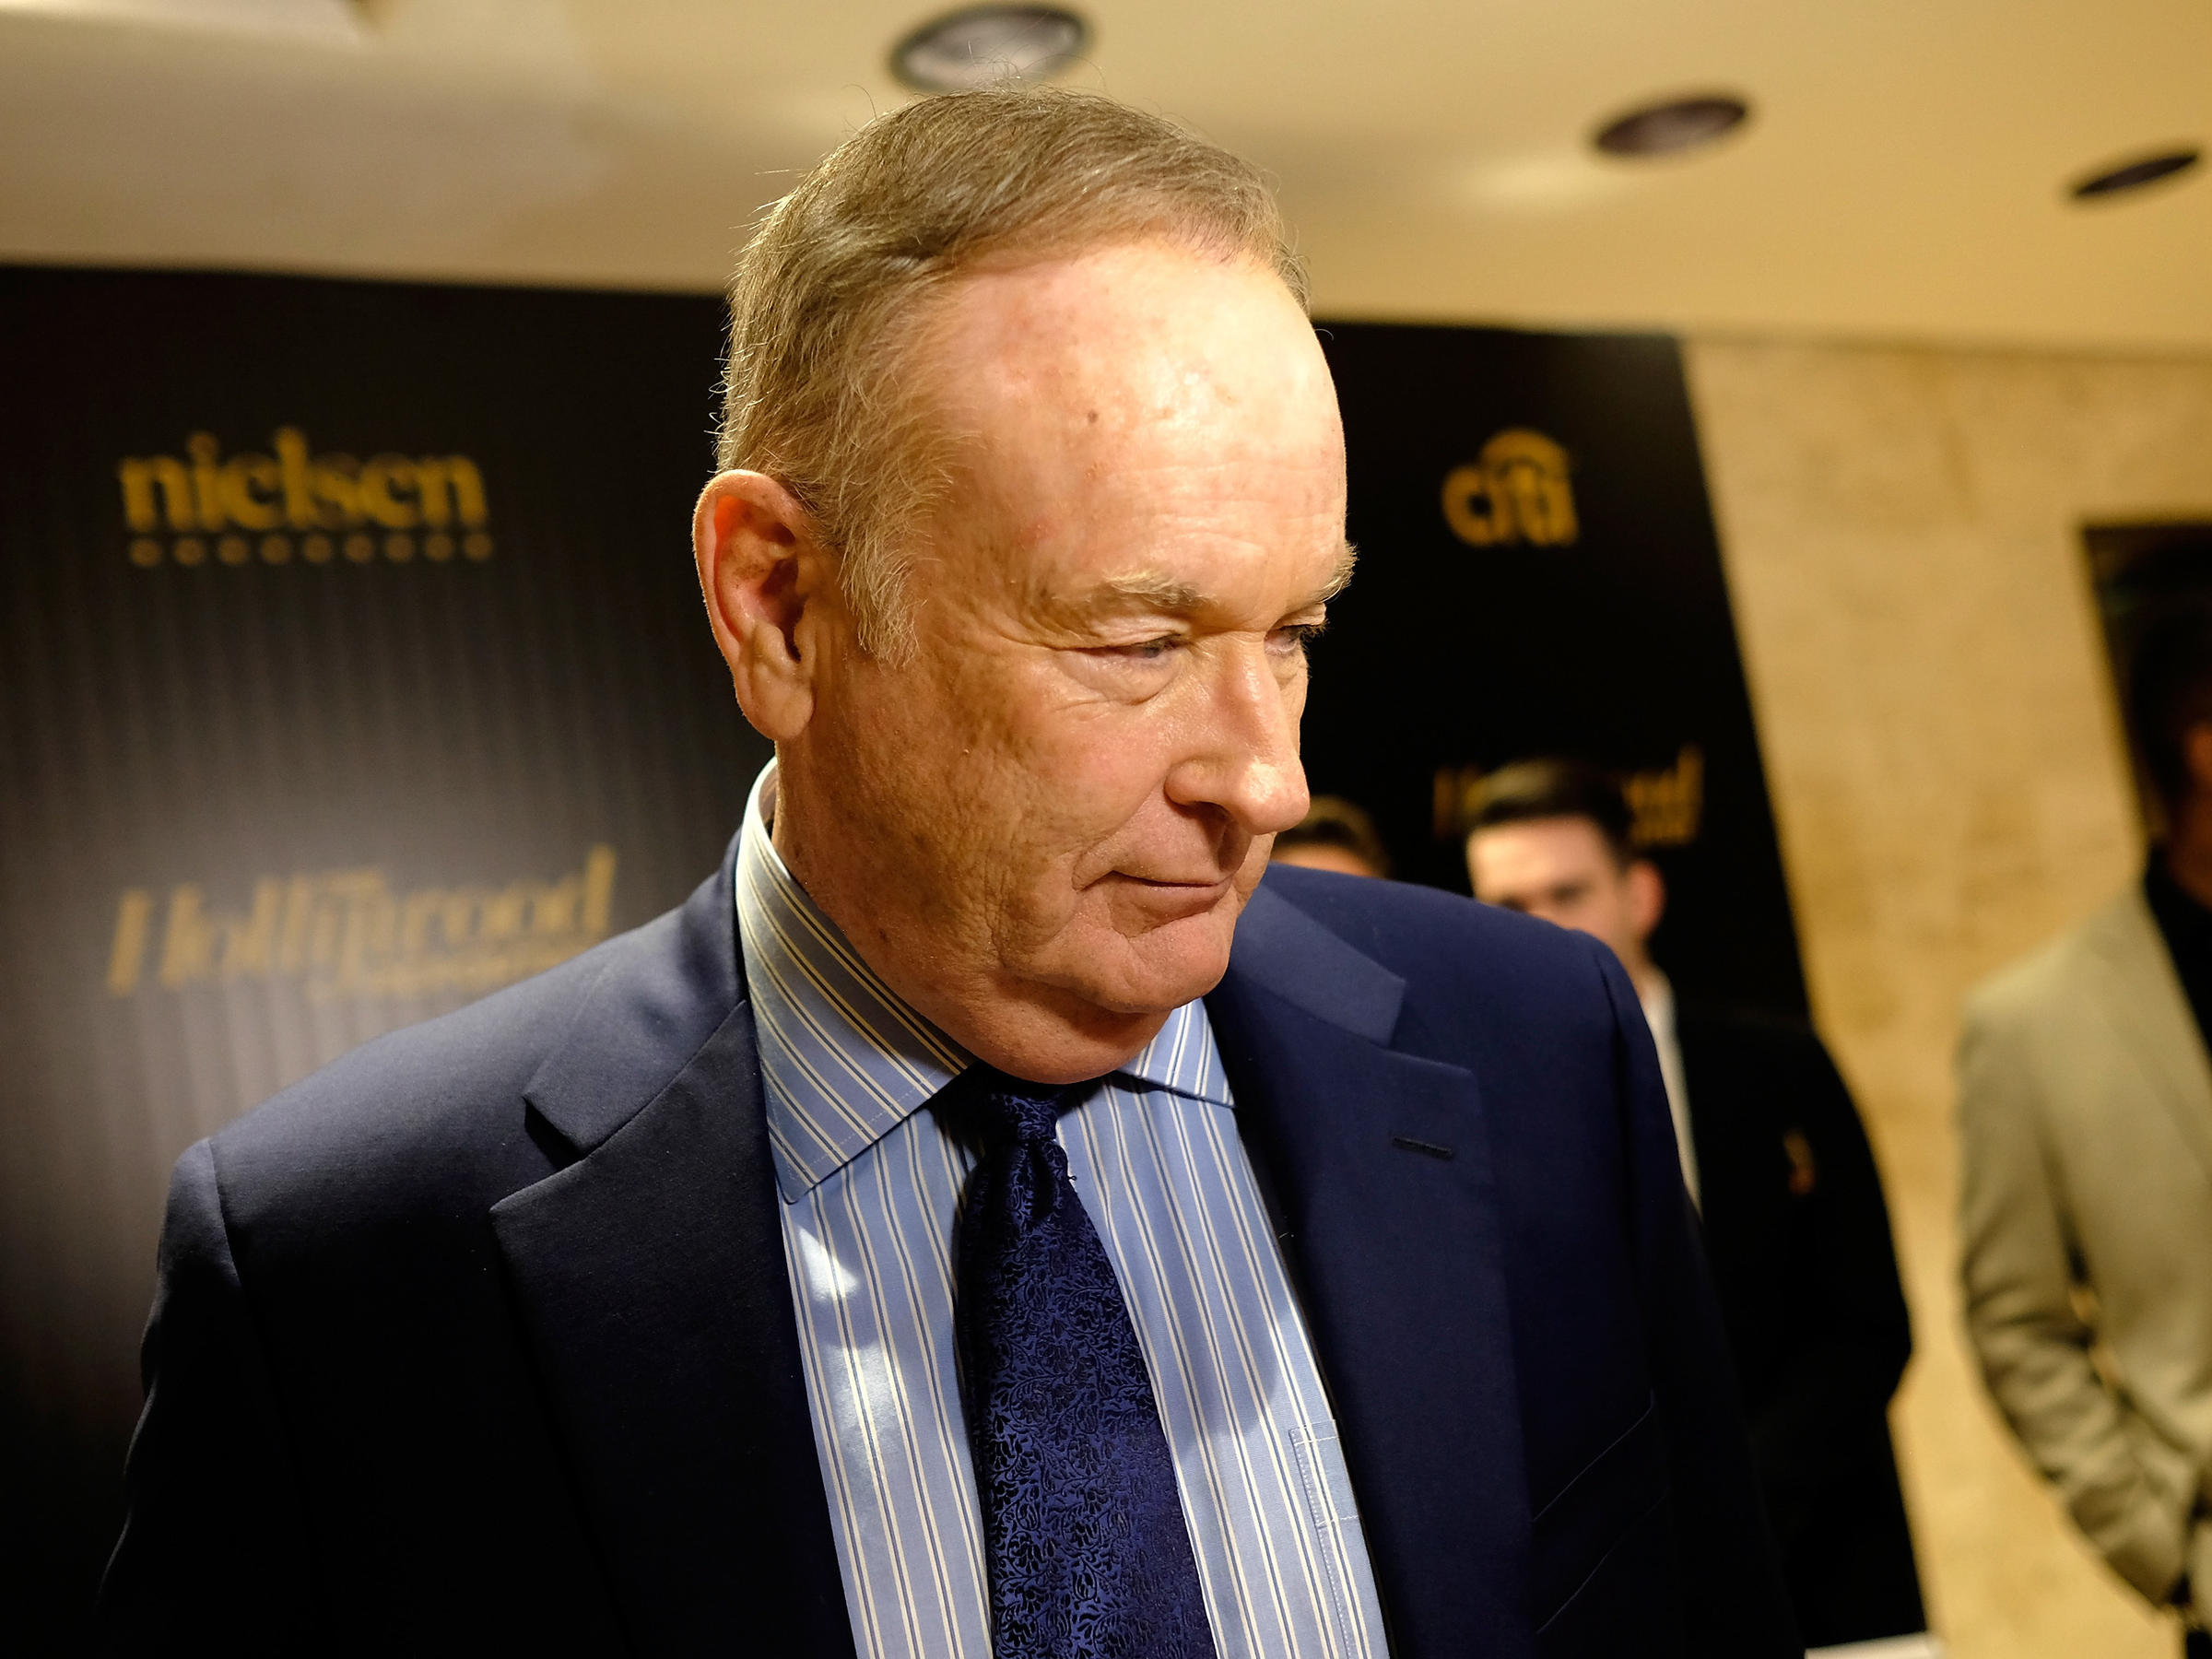 O'Reilly out at Fox News Channel, still denies allegations